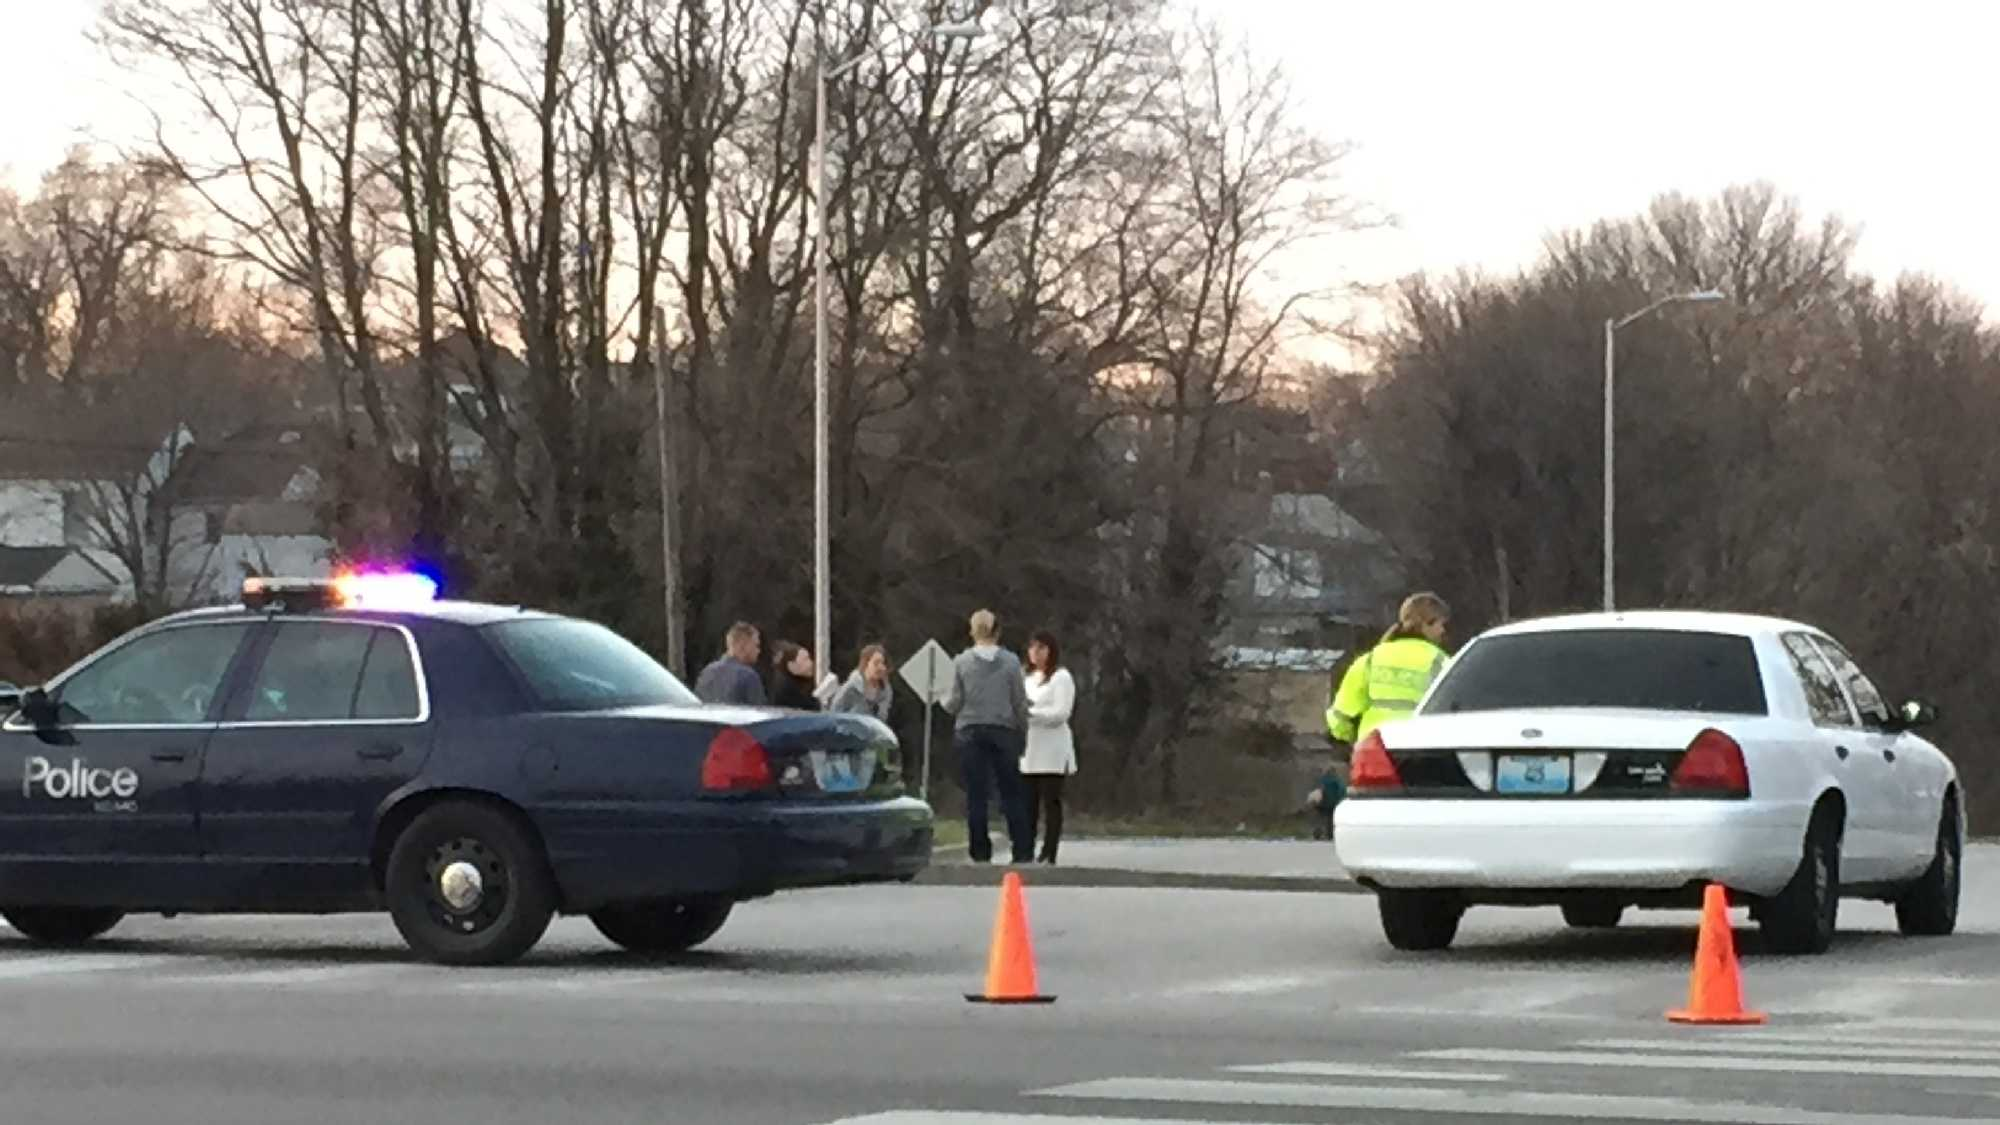 One person was killed in a crash Wednesday afternoon in Kansas City. Authorities said a GMC pickup truck and Chevrolet Impala collided at Independence and Chestnut avenues. Authorities said speed was a factor in the cause of the crash.